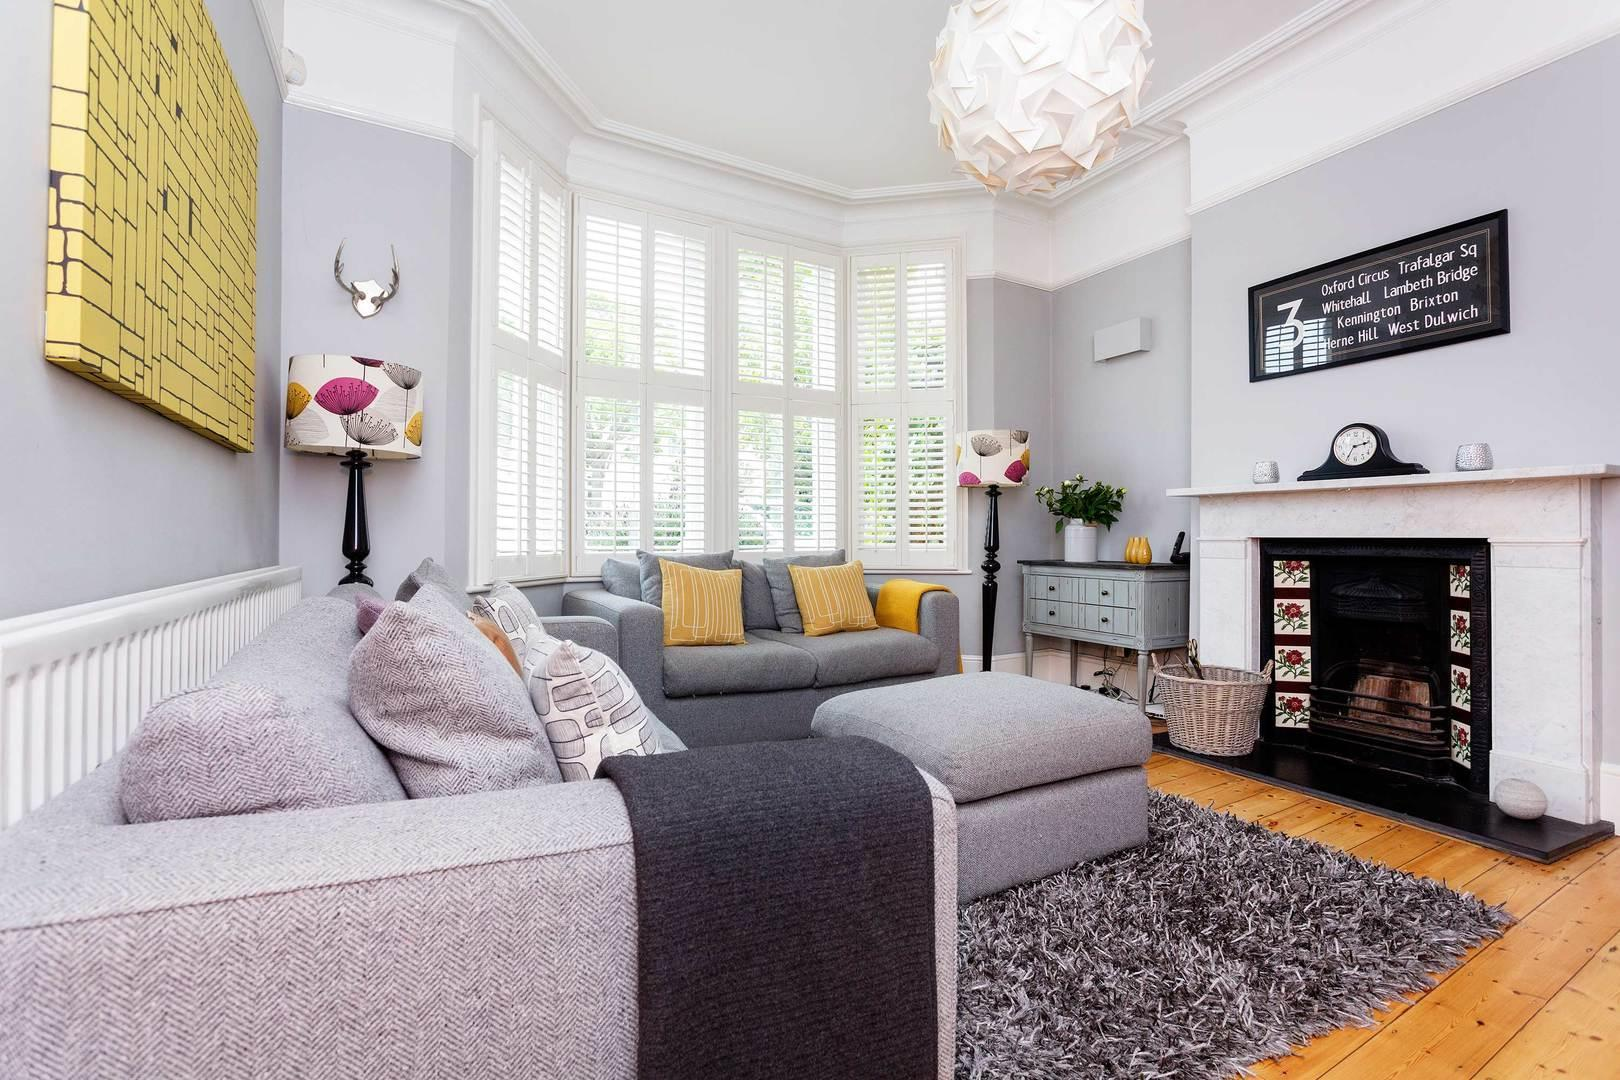 West Dulwich Retreat Discount